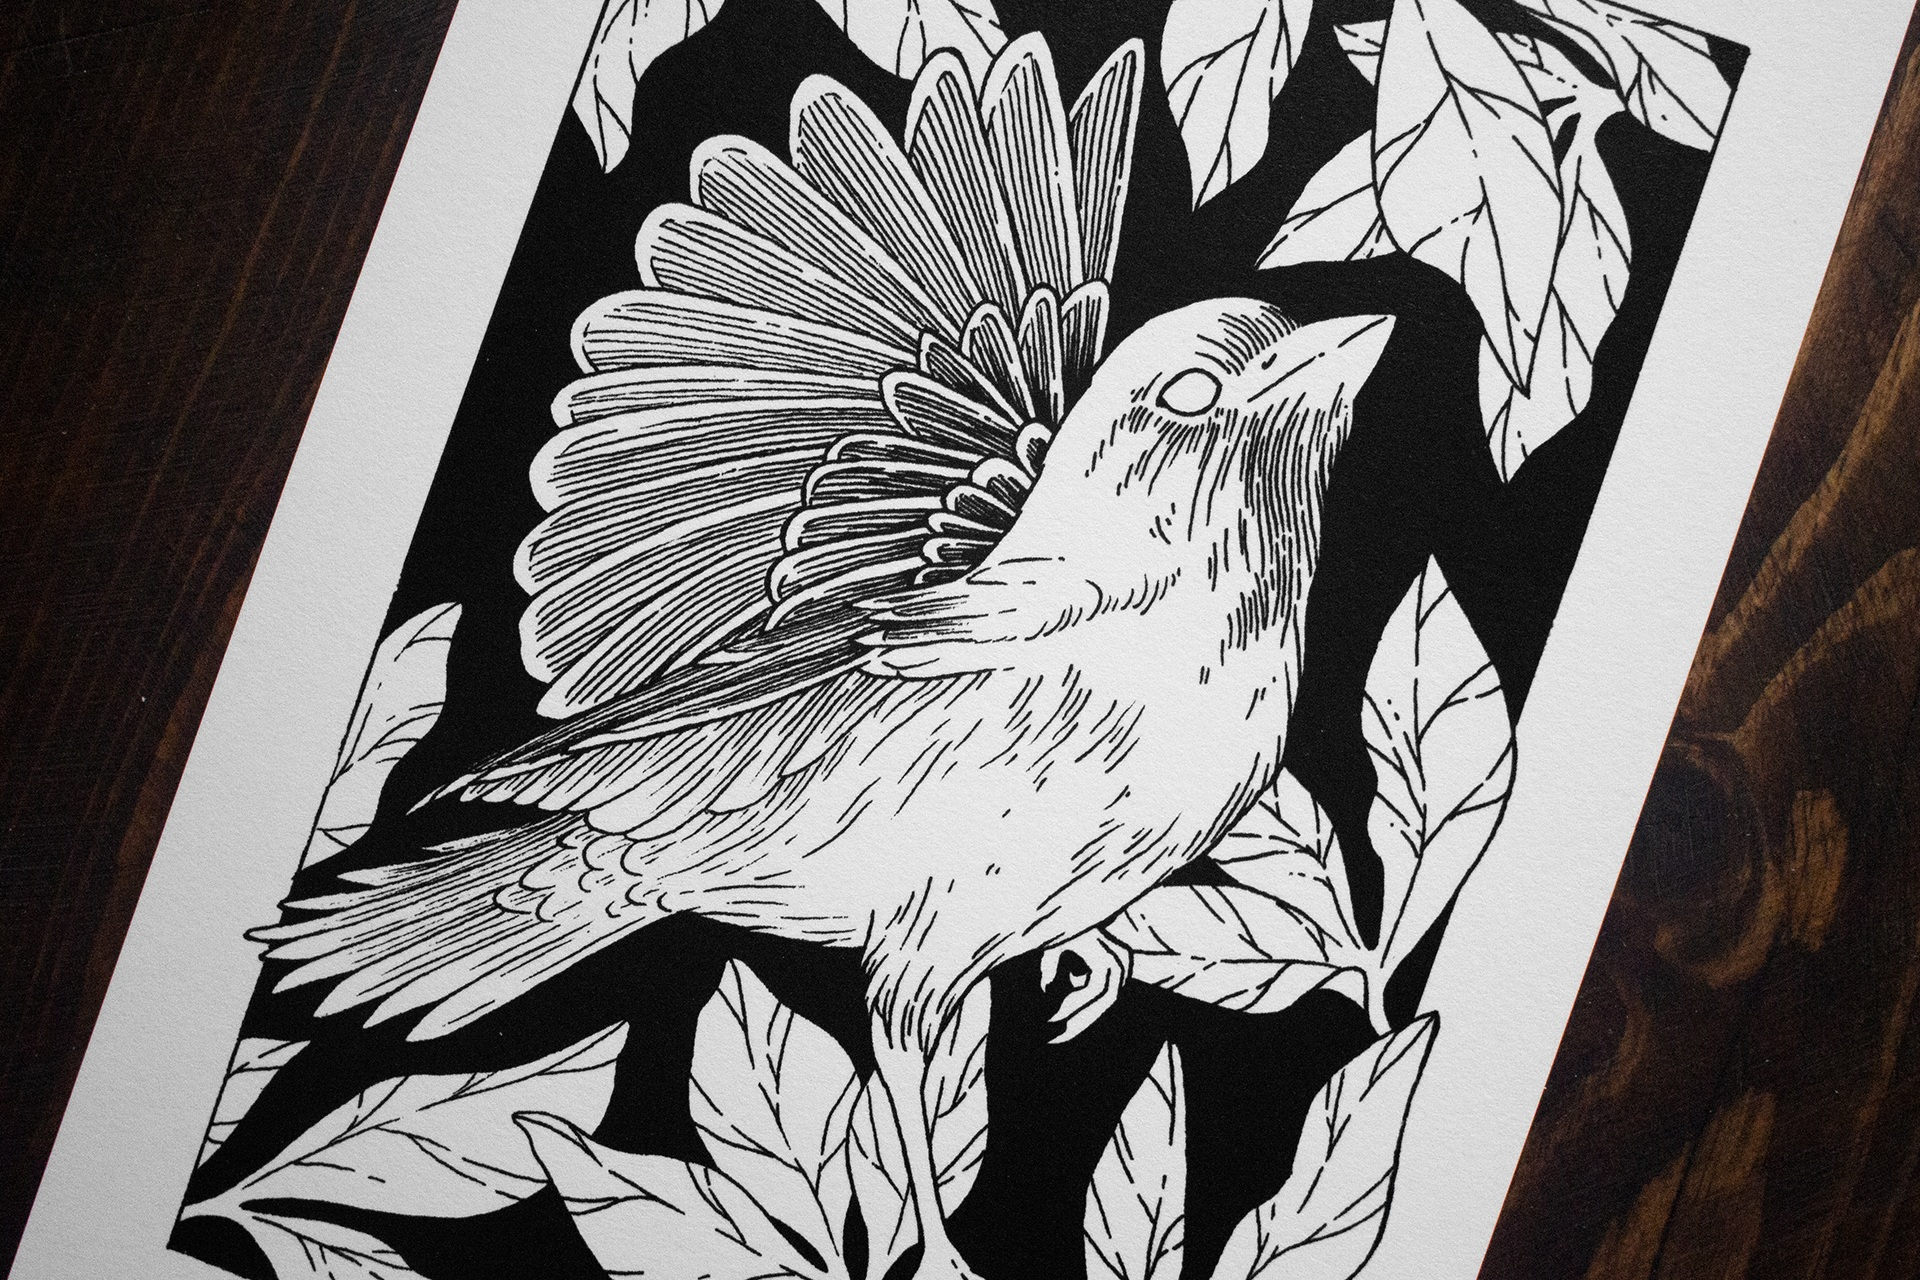 Jenn Sneary Illustration, Wing, floral pen and ink fantasy drawings